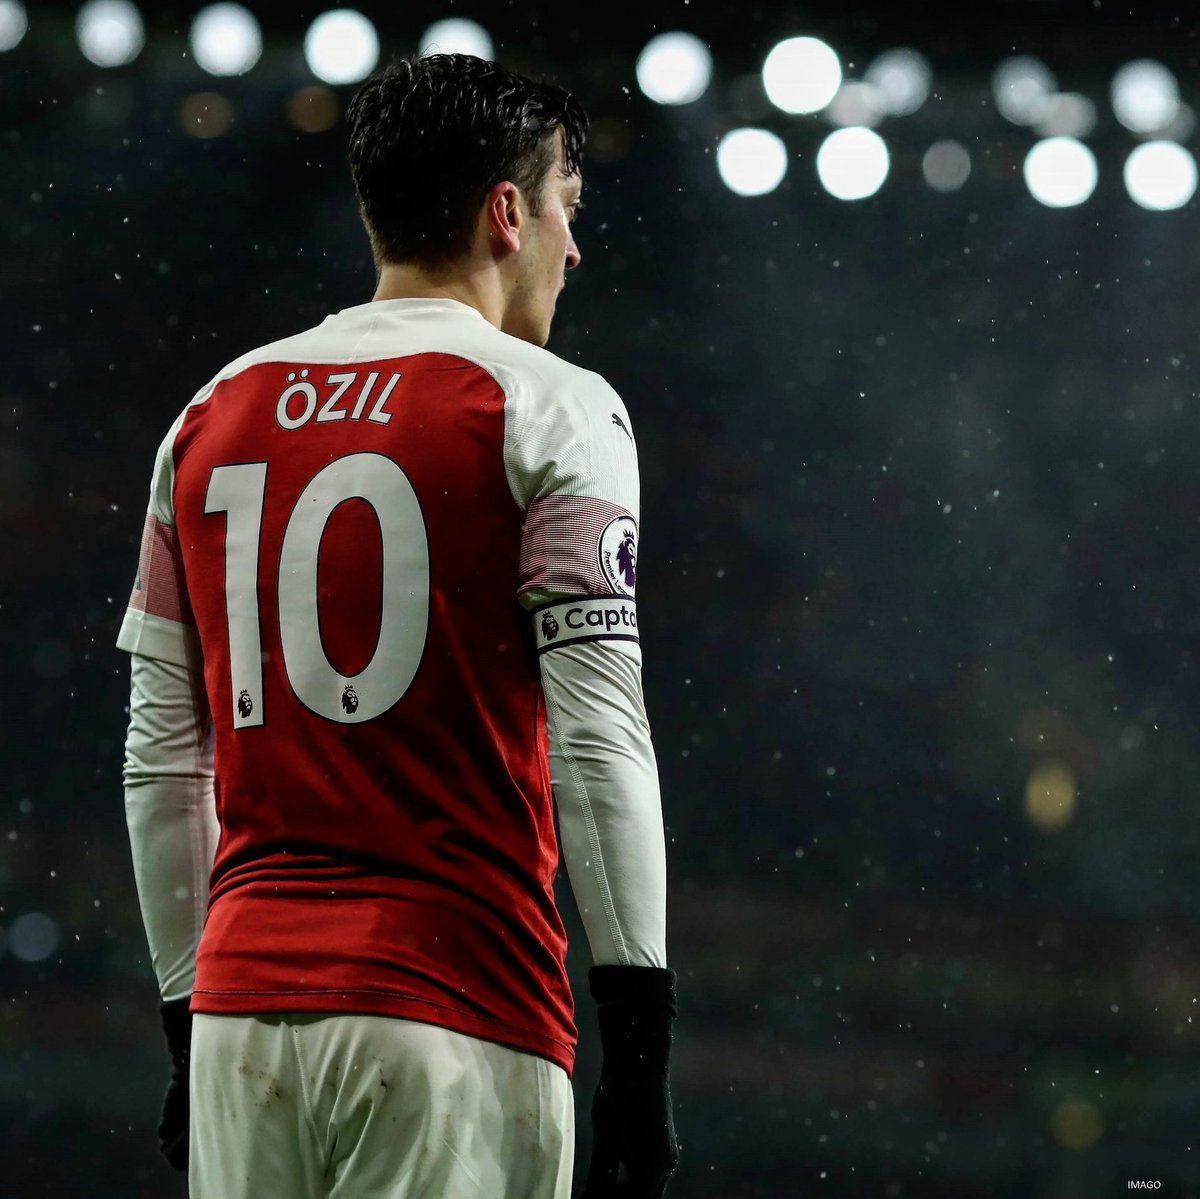 During the 22 games unbeaten run -  Mesut Ozil starts 9 games, coming in from bench 2 times & missed 11 games.  In those 11 games he played, we won 8 games & draw 3 games.  Mesut scored 4 goals & have 2 assists during this period. #AFC